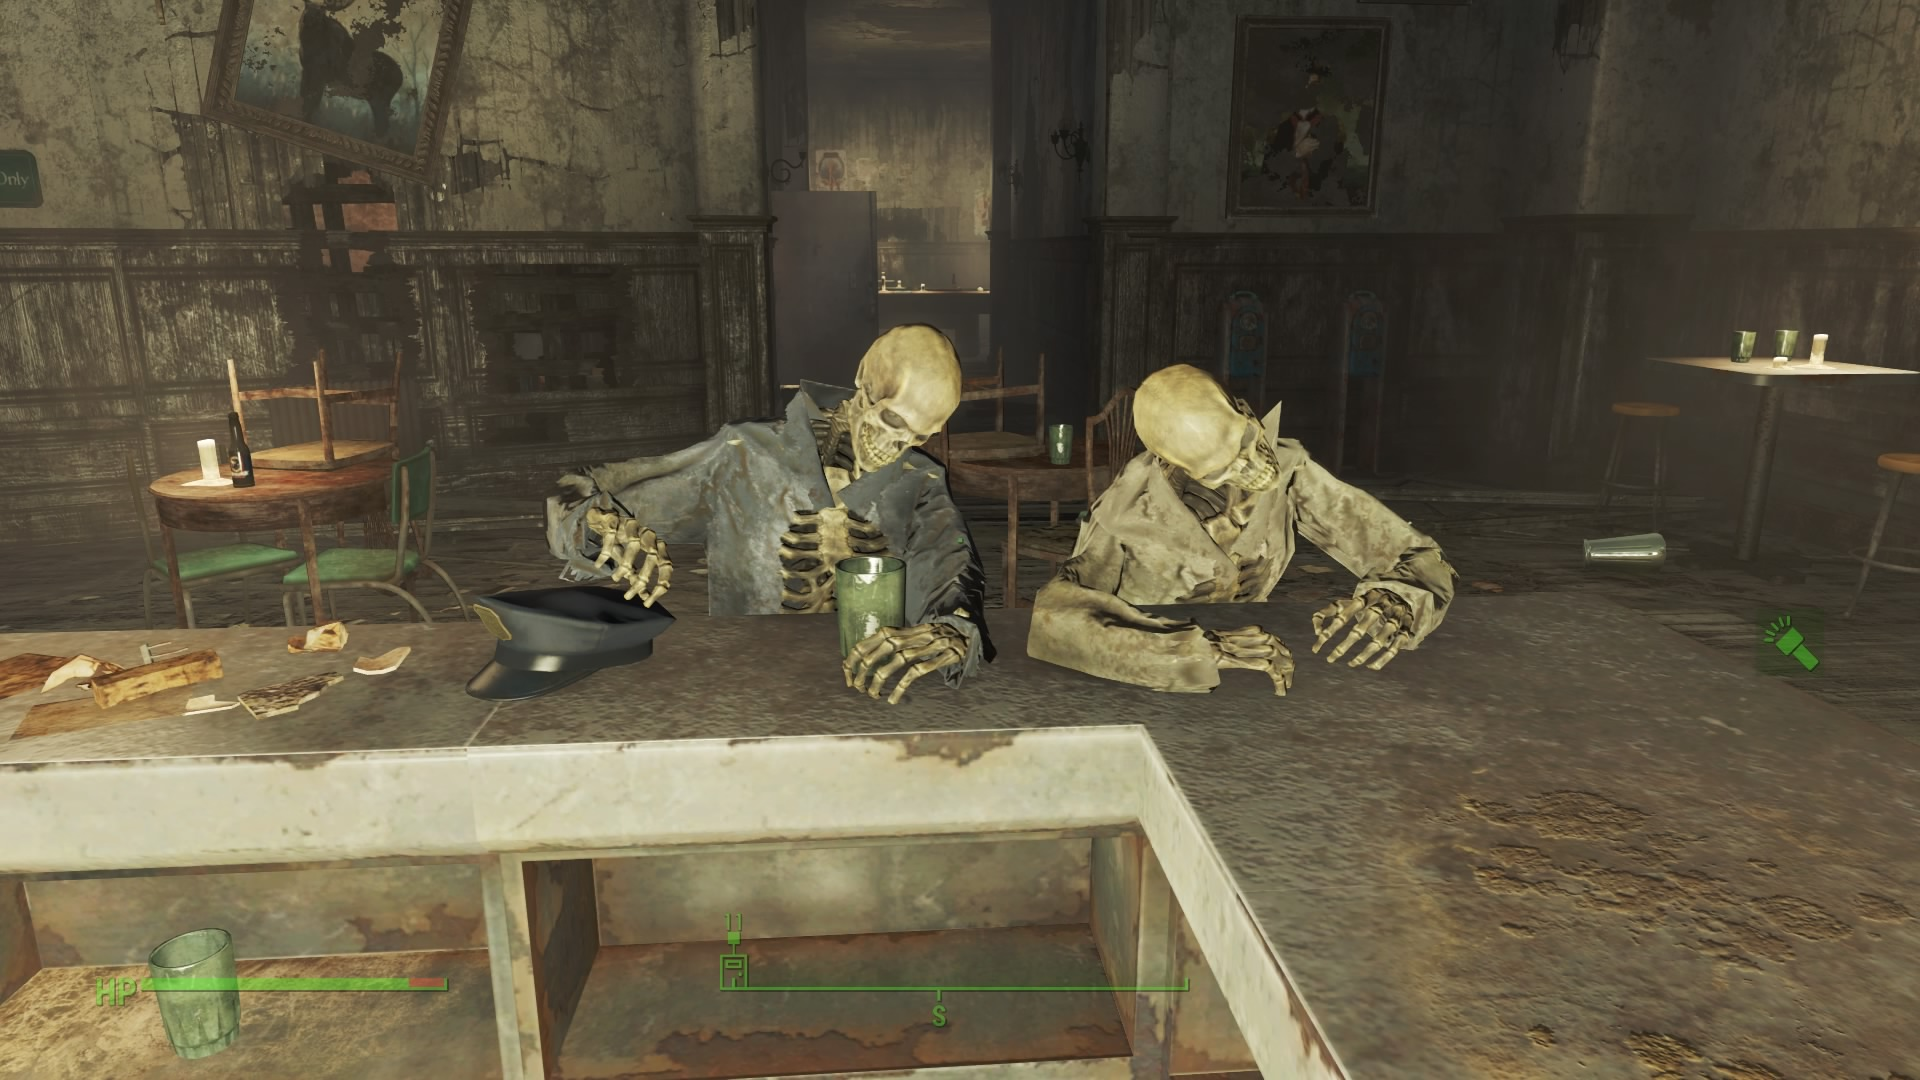 Even Cliff and Norm are assuming their positions at the bar...amazing Bethesda, nerdy but amazing.